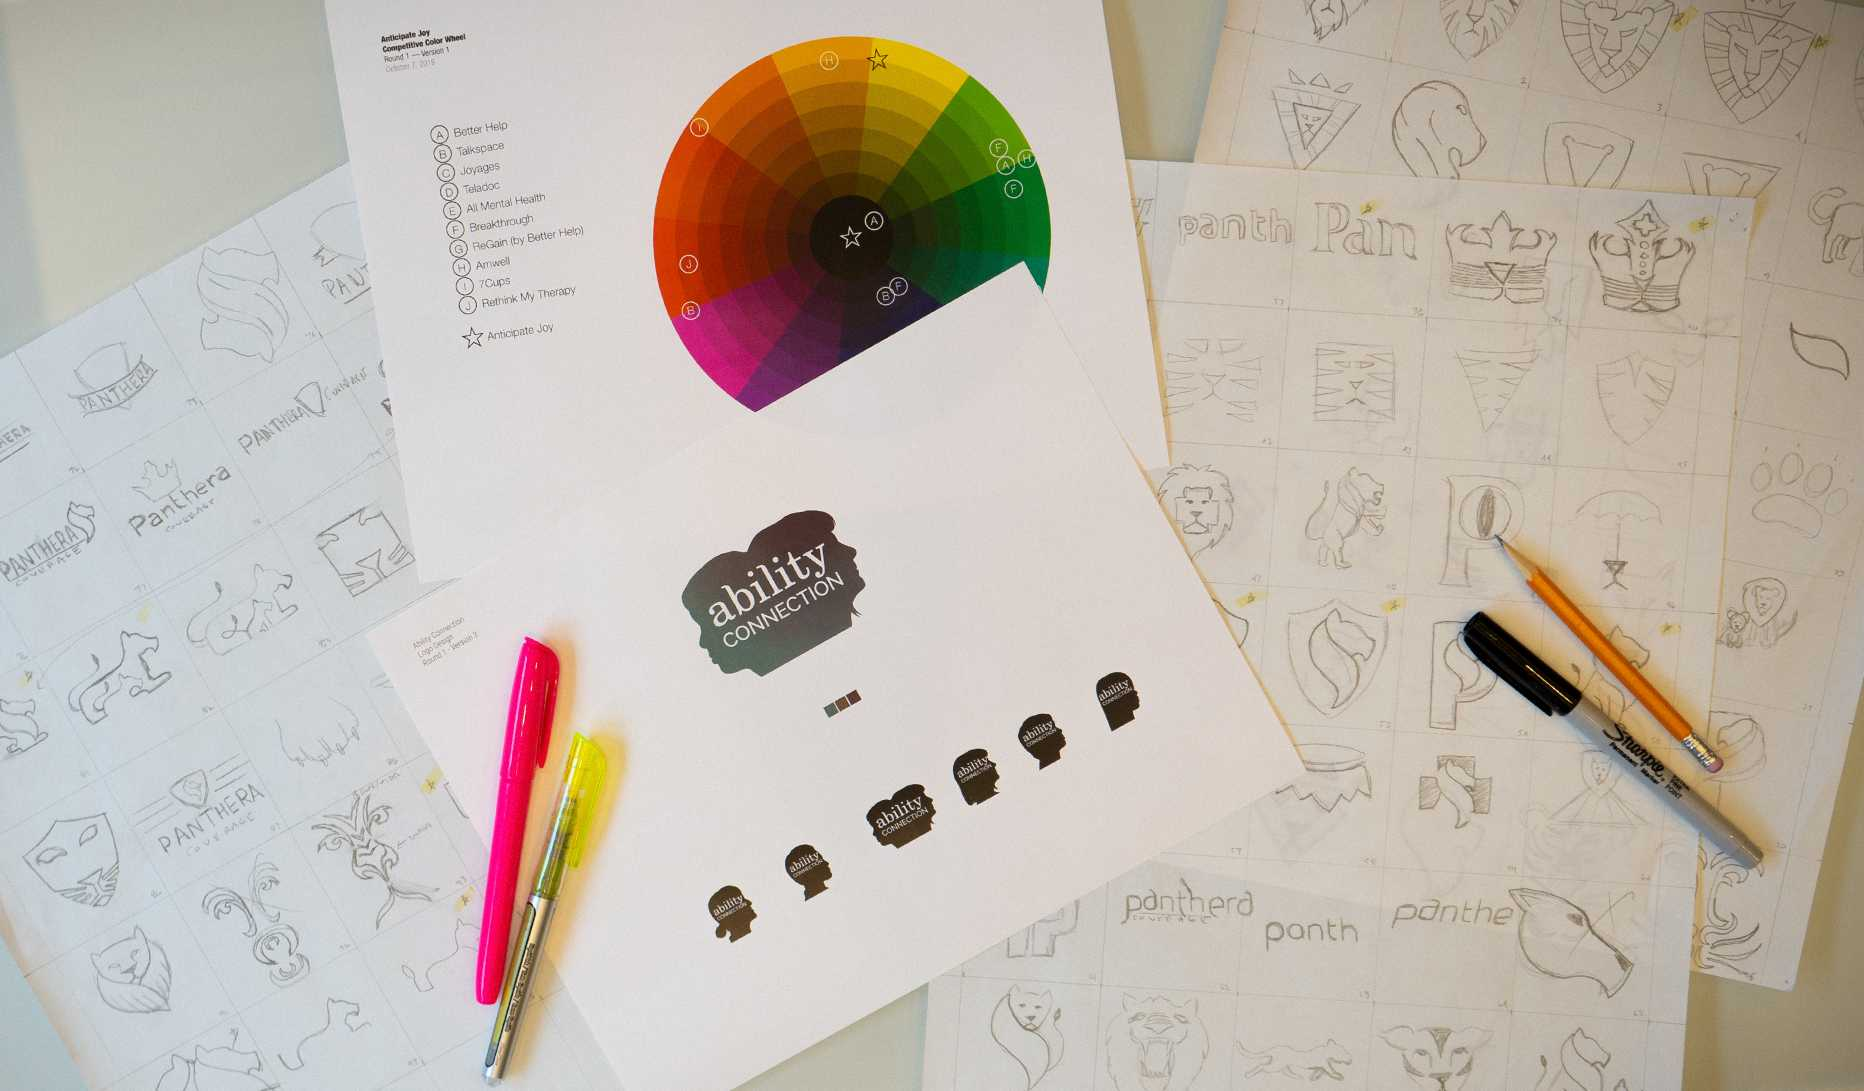 Table with logo sketches, color wheel and logo printout